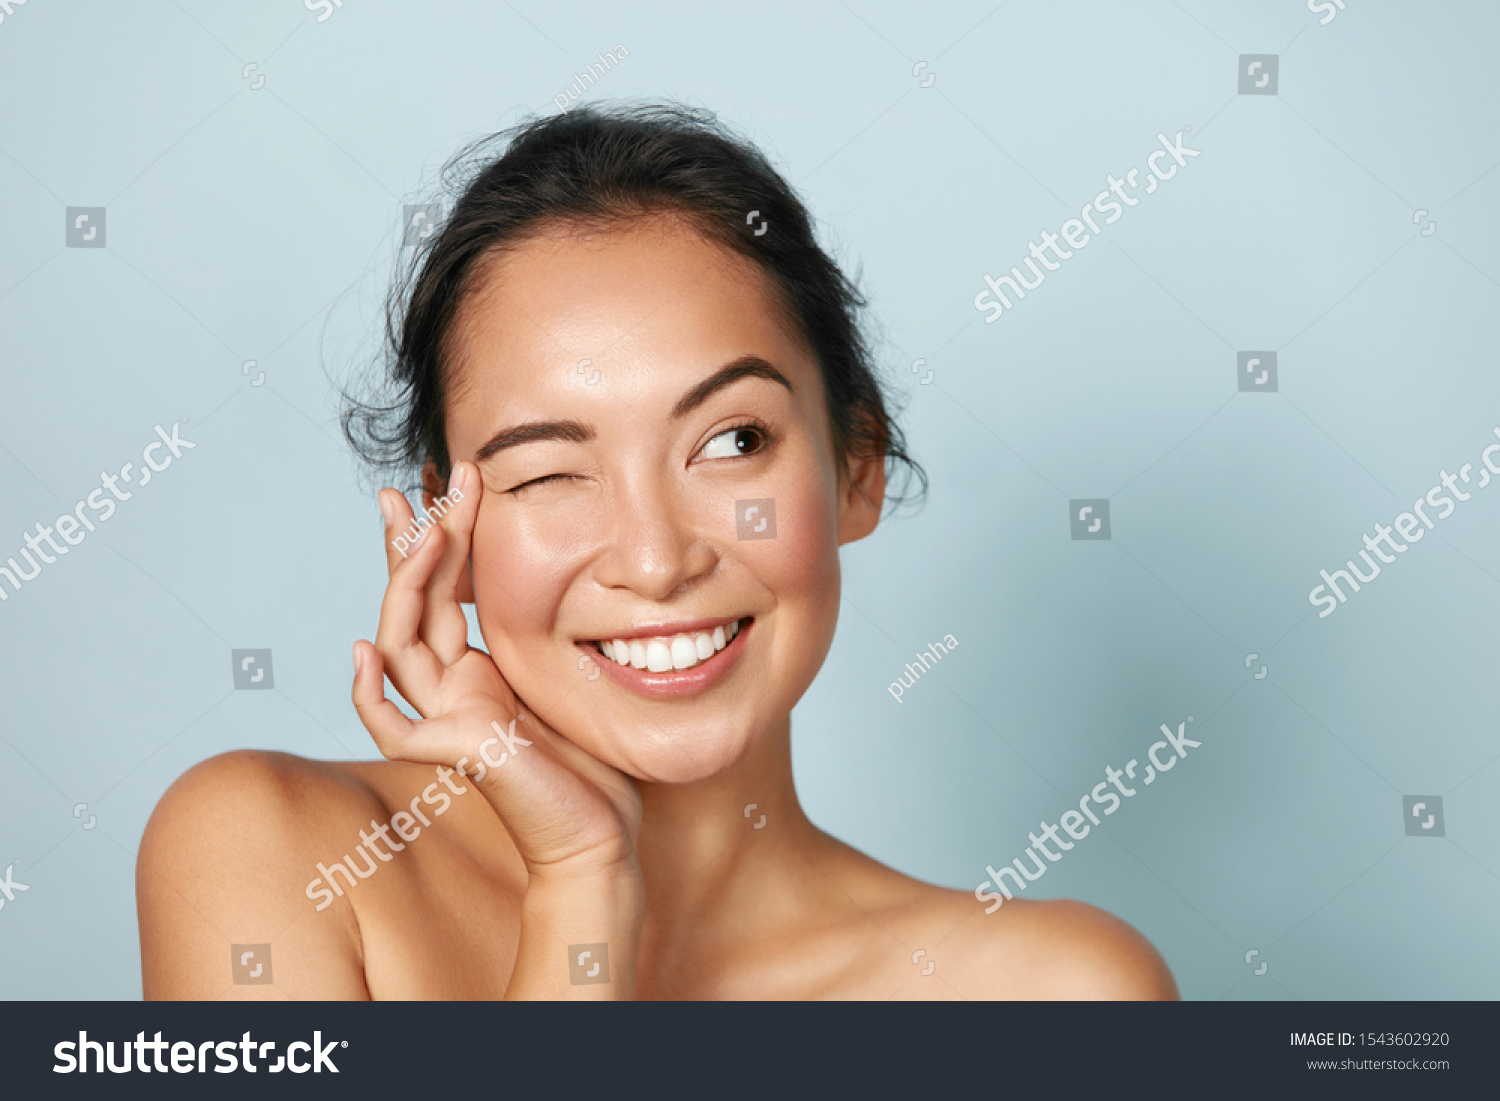 Skin care. Woman with beauty face touching healthy facial skin portrait. Beautiful smiling asian girl model with natural makeup touching glowing hydrated skin on blue background closeup #1543602920